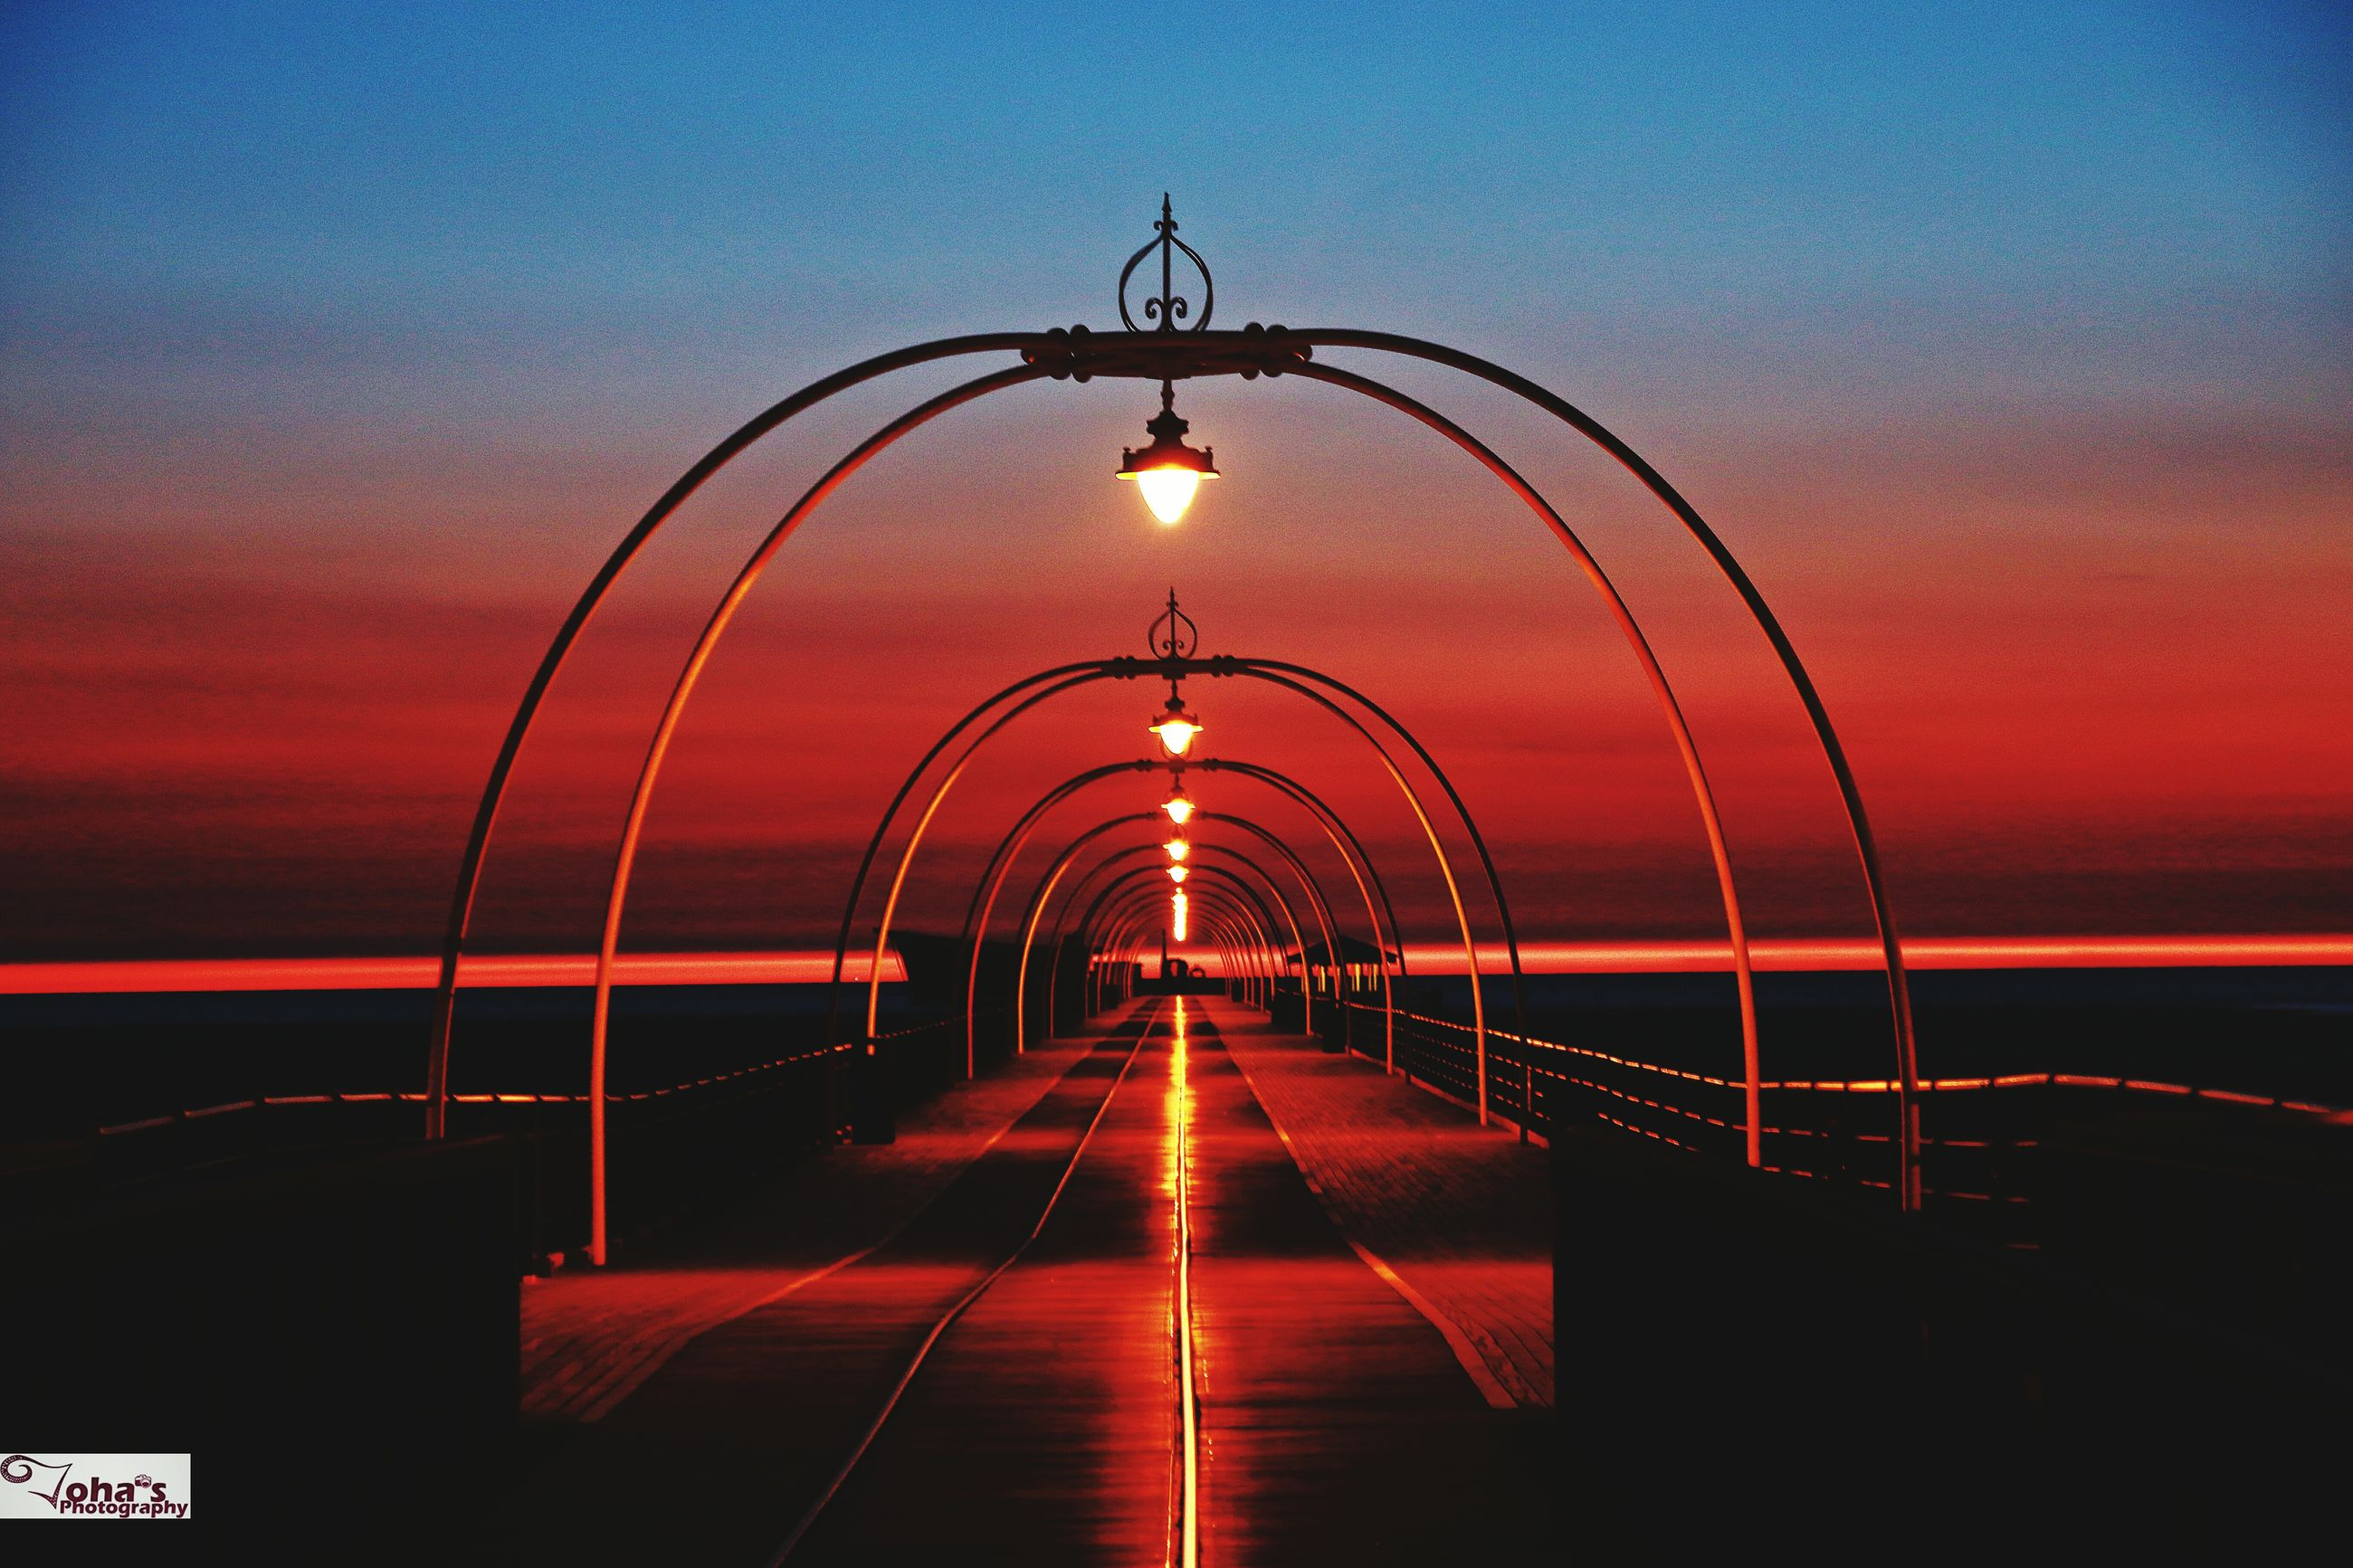 the way forward, illuminated, sunset, lighting equipment, street light, arch, diminishing perspective, in a row, long, bridge, tranquility, electric light, tranquil scene, sky, surface level, sea, vanishing point, arched, scenics